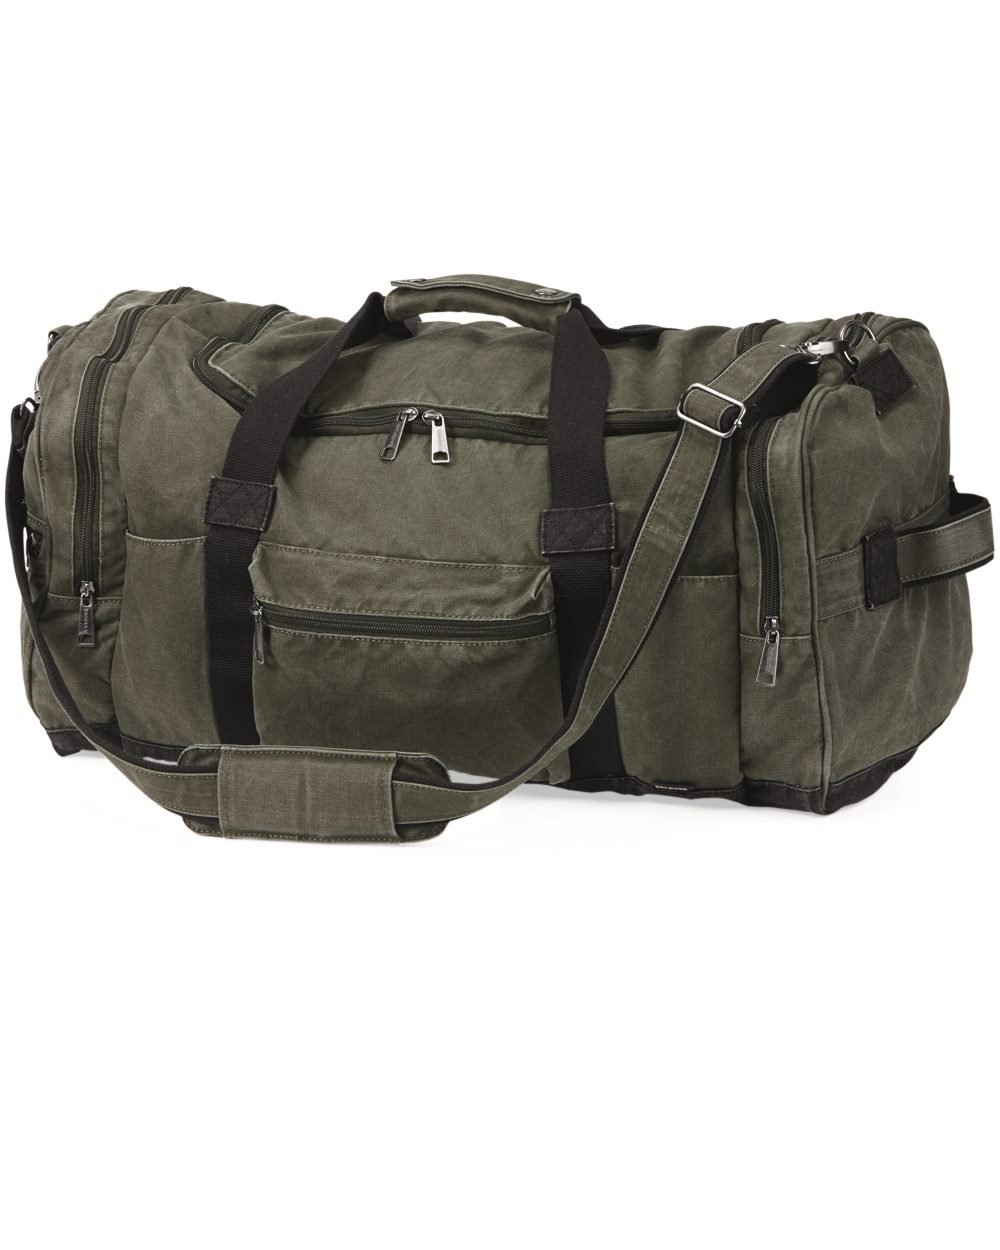 DRI DUCK 1040 - Expedition 60L Duffel